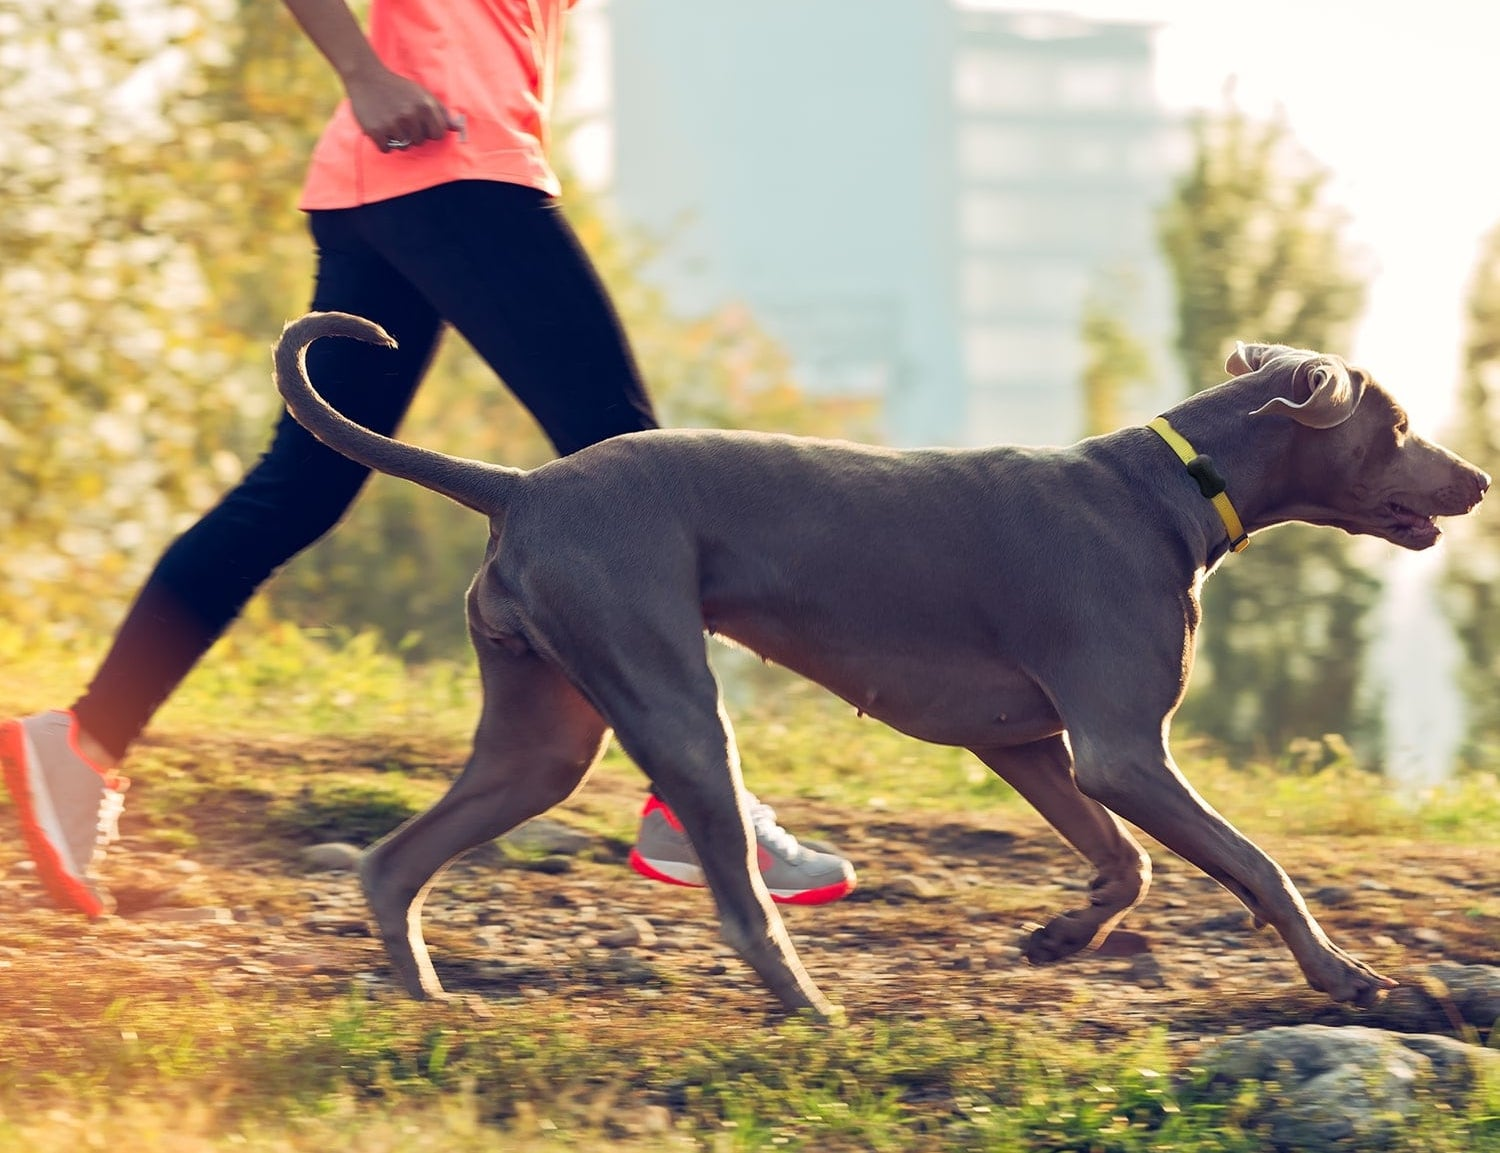 Fit Bark 2 Advanced Dog Activity Tracker is like a Fitbit for your dog